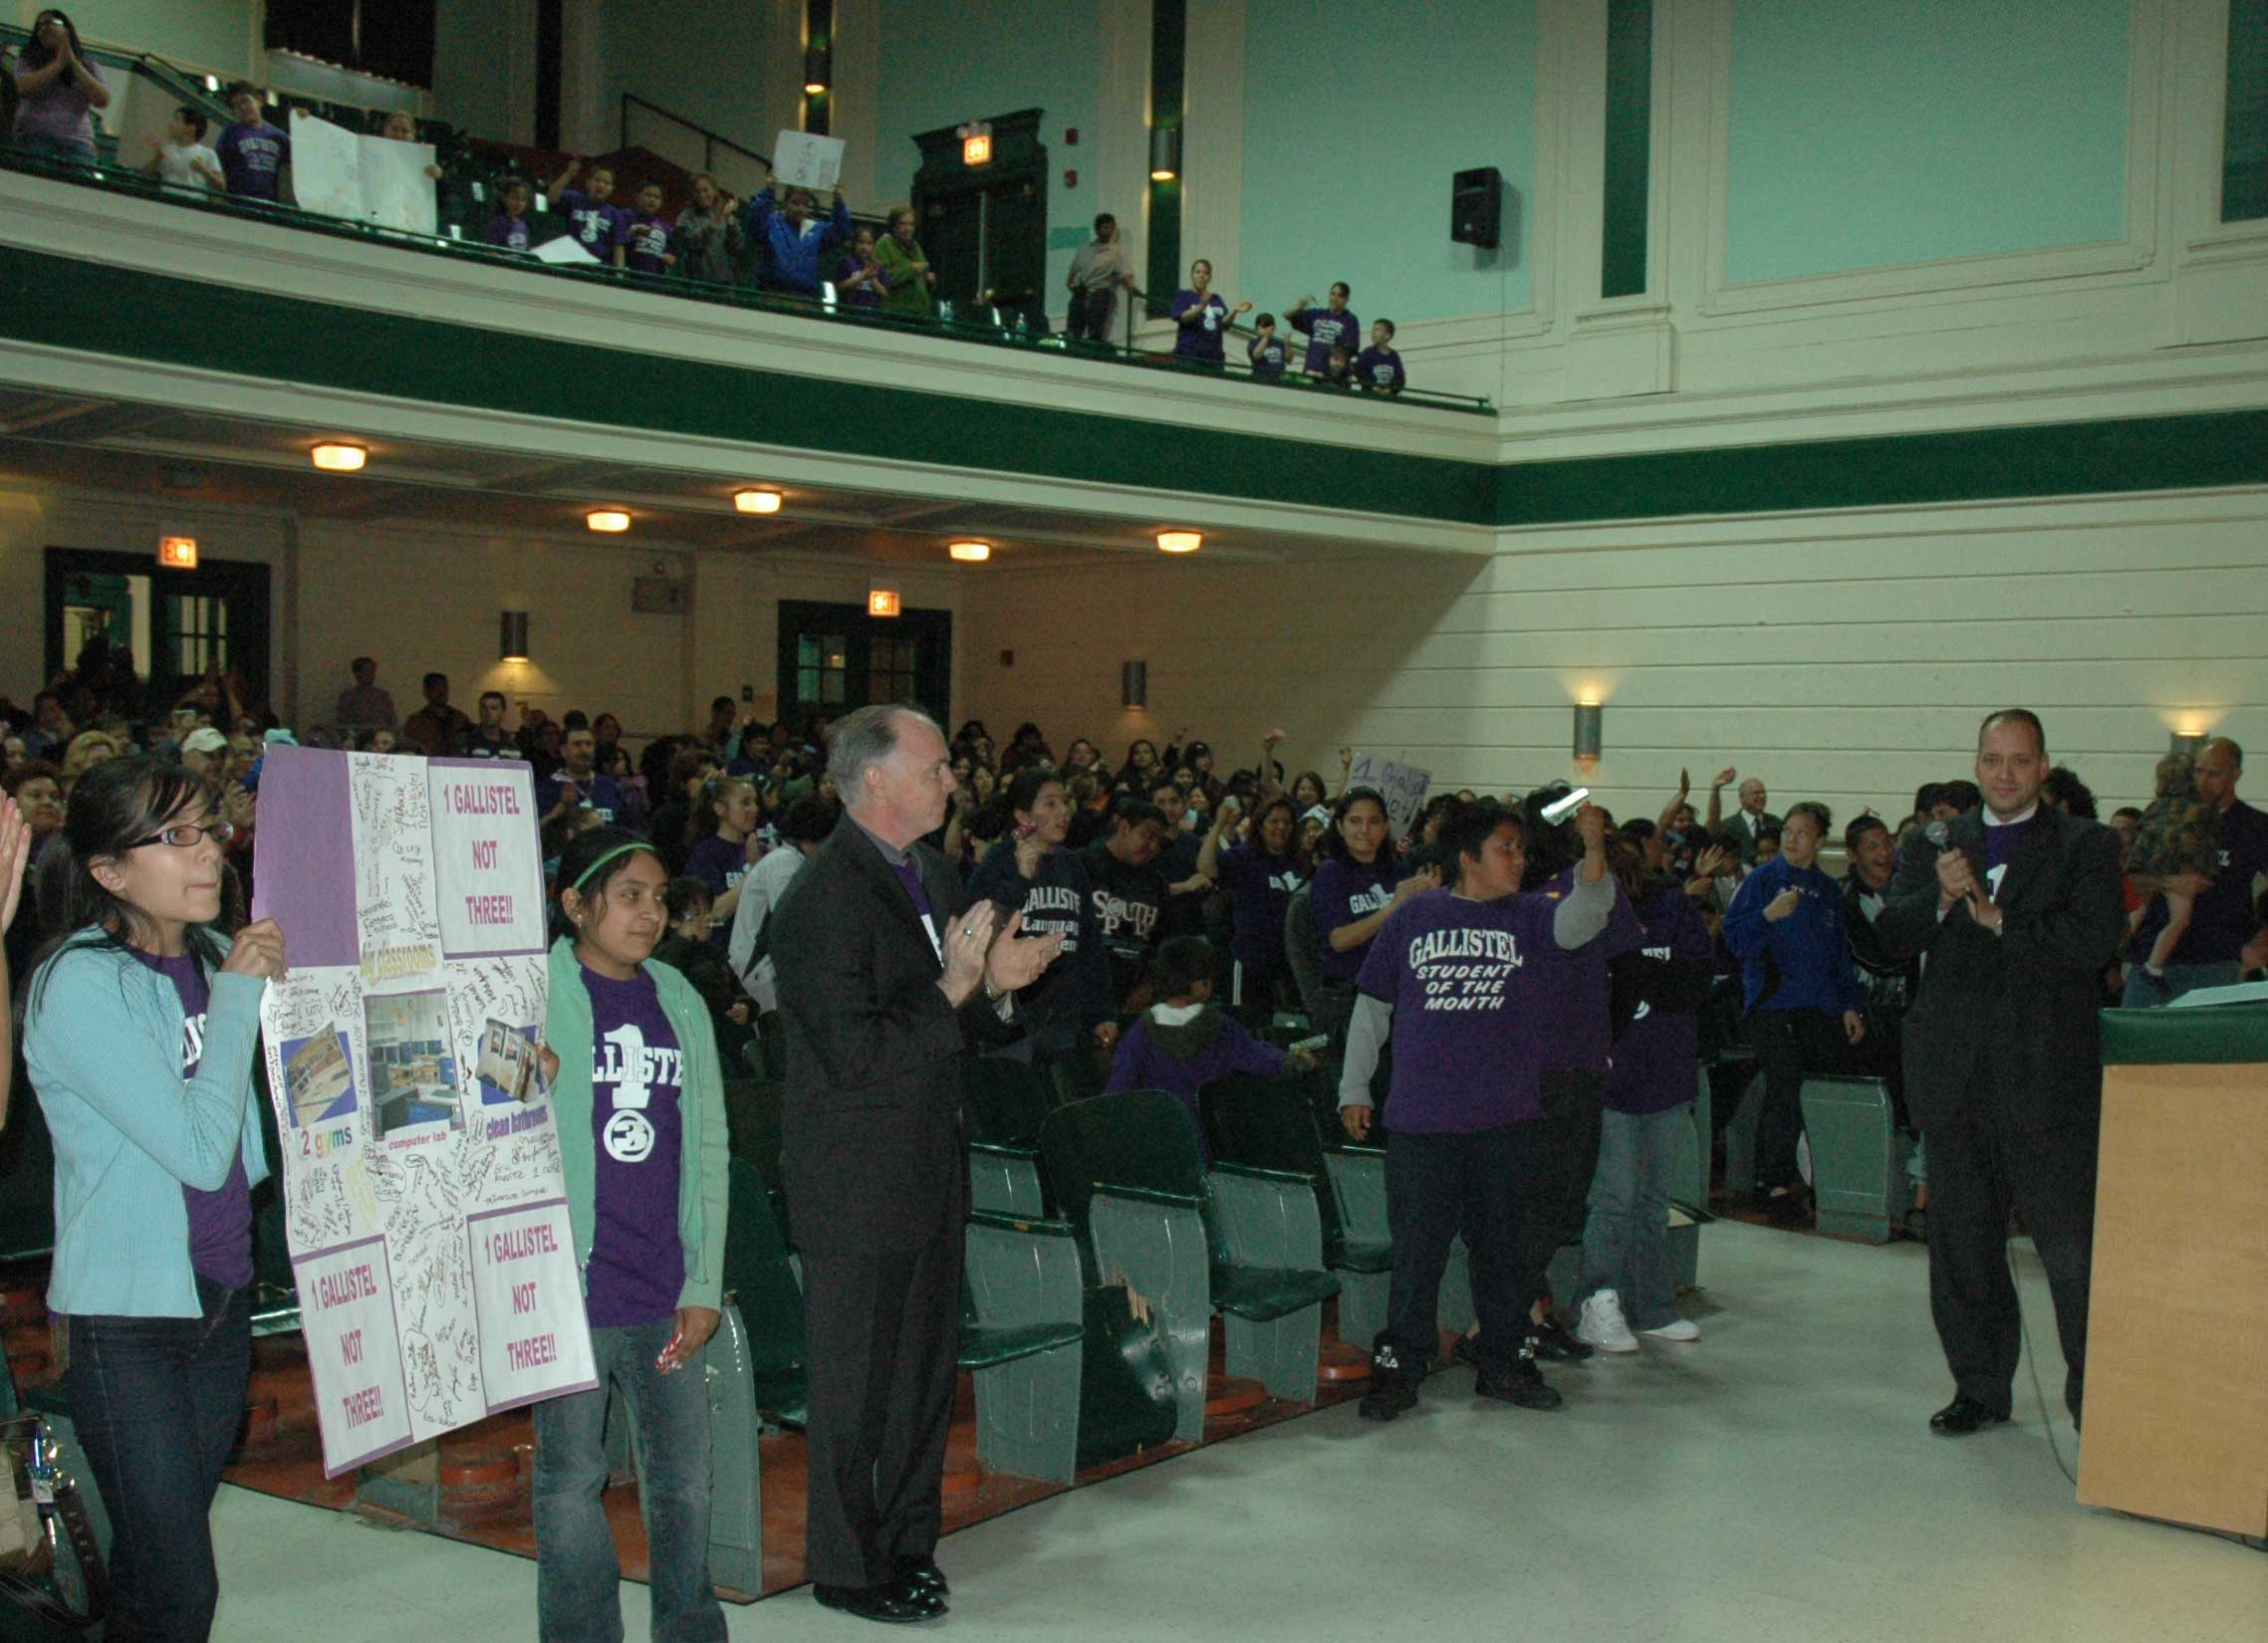 "Holding a sign and wearing purple tee shirts that read ""One Gallistel, Not Three"", more than 600 students, teachers, parents, and community supporters nearly filled the auditorium at Morgan Park High School on May 22, 2008. The Gallistel Elementary School contingent arrived by car and in 13 buses, making them the largest contingent to testify during the six-day hearings on the Board of Education's Capital Development program in May. Standing at the podium on the right (above) and wearing his Gallistel tee shirt is Alderman John Pope (10th Ward) who spoke about the need for a new Gallistel school to consolidate the present three-school reality. Gallistel supporters filled most of the main floor of the large auditorium and the front row of the balcony. Whether Gallistel ever gets relief from its problems is another question, one not answered by the officials who hosted the hearings. Since Arne Duncan became CEO of the Chicago Public Schools in July 2001, schools like Gallistel, which proudly proclaim that they are public schools, have been short changed in all capital expenses, while school improvement and construction budgets are manipulated to support privatization schemes and other programs promoted by Chicago Mayor Richard M. Daley. Substance photo by George N, Schmidt."